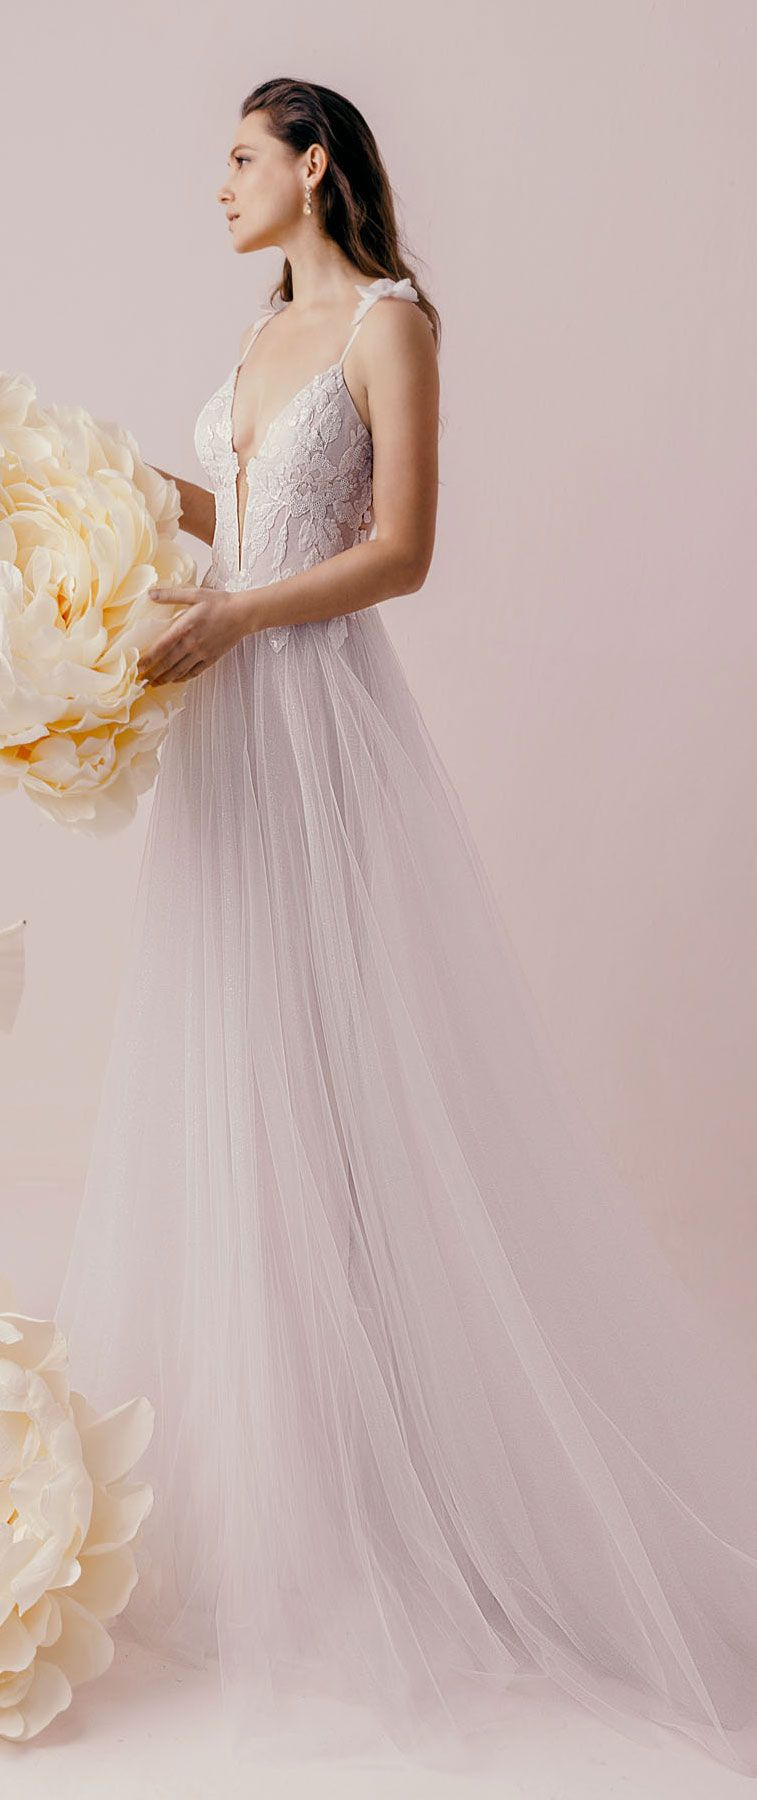 Irena Burshtein 2018 Wedding Dresses